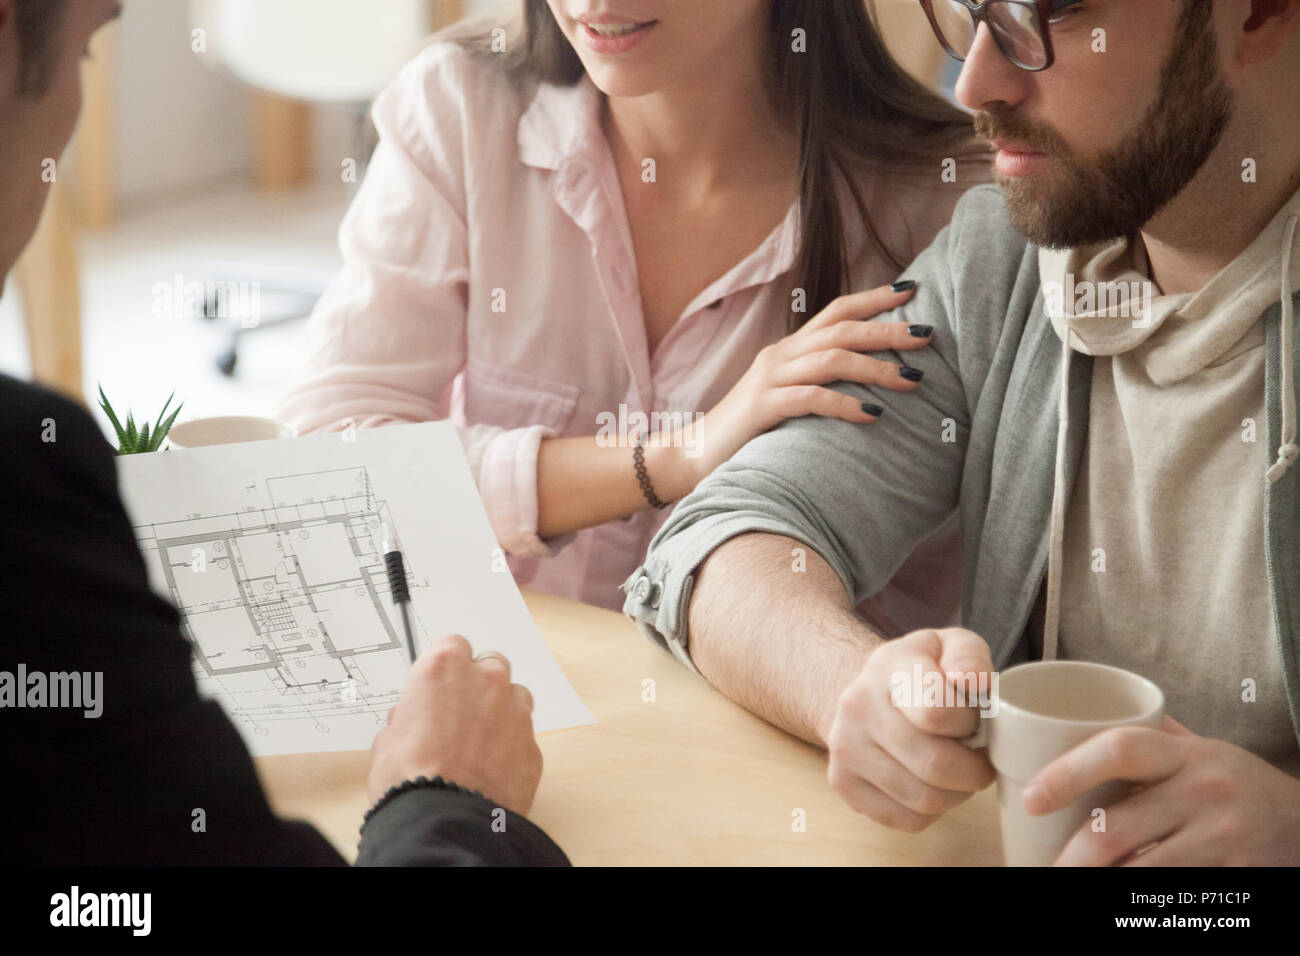 Millennial couple consulting about home design project in archit - Stock Image